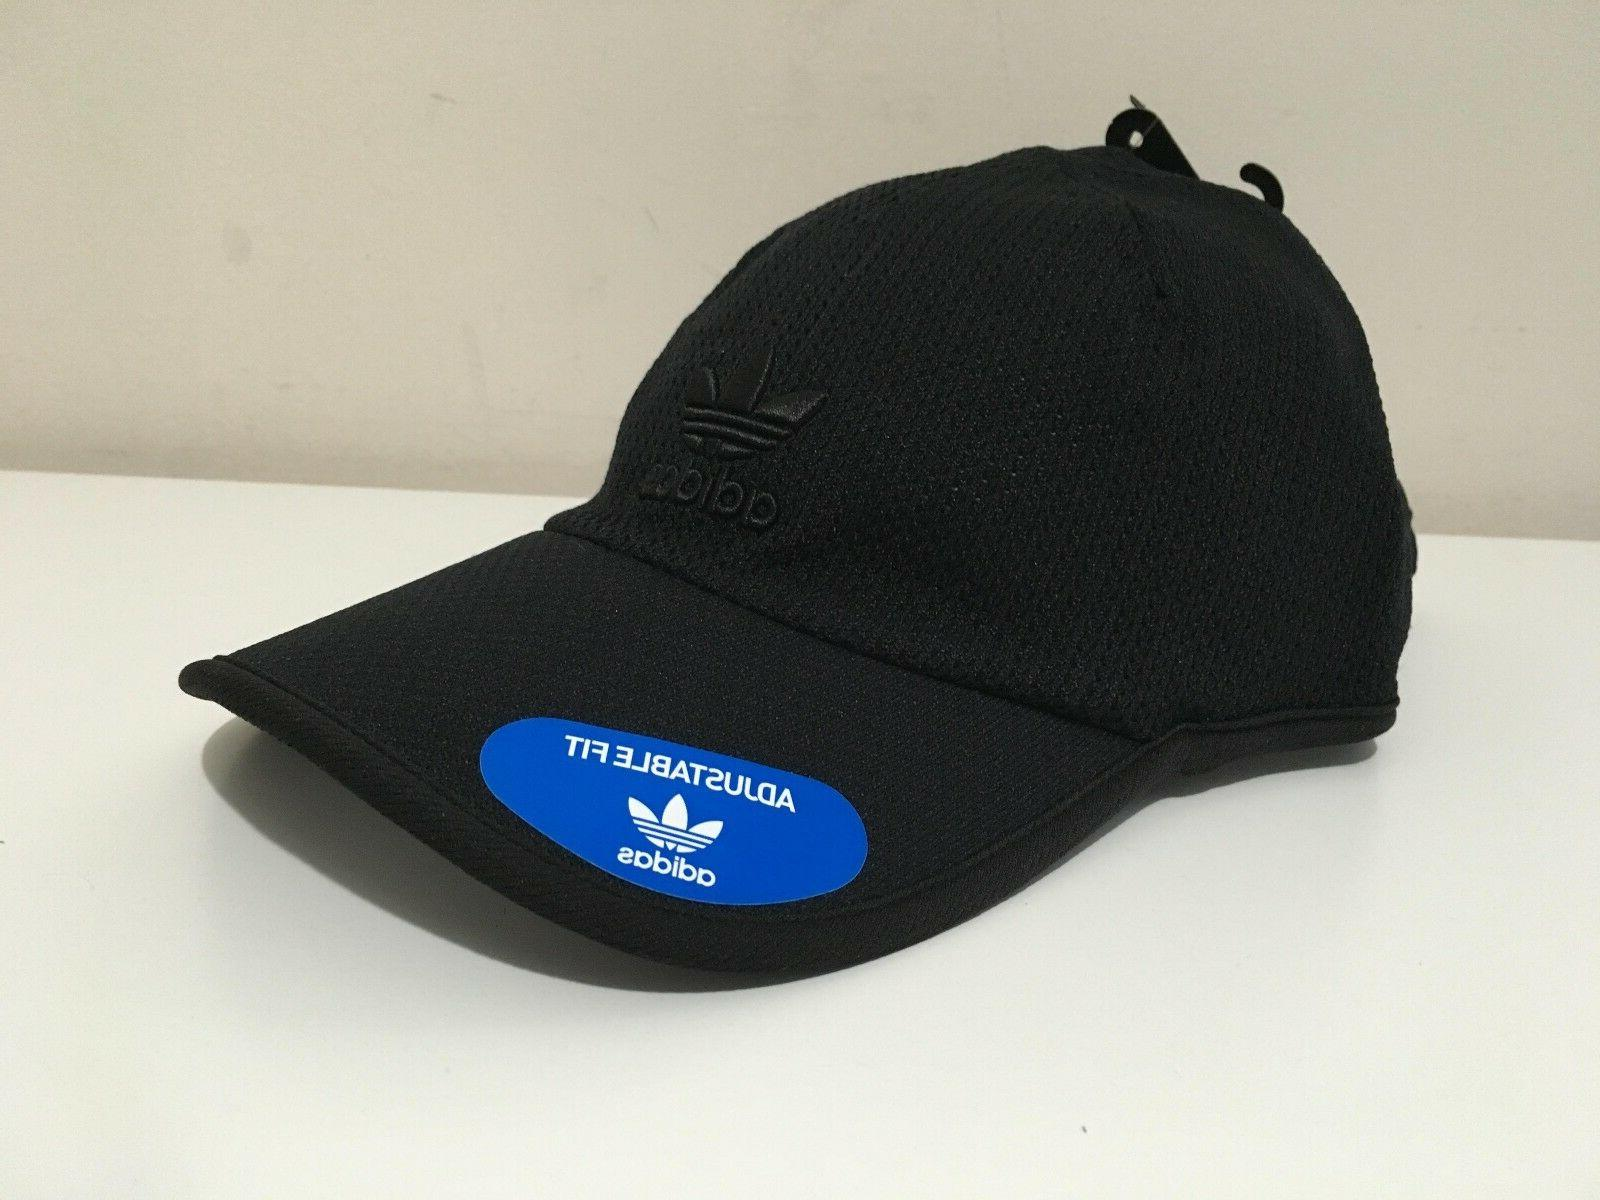 ADIDAS MEN'S ORIGINAL PRIME STRAP-BACK PERFORATED BLACK CAP